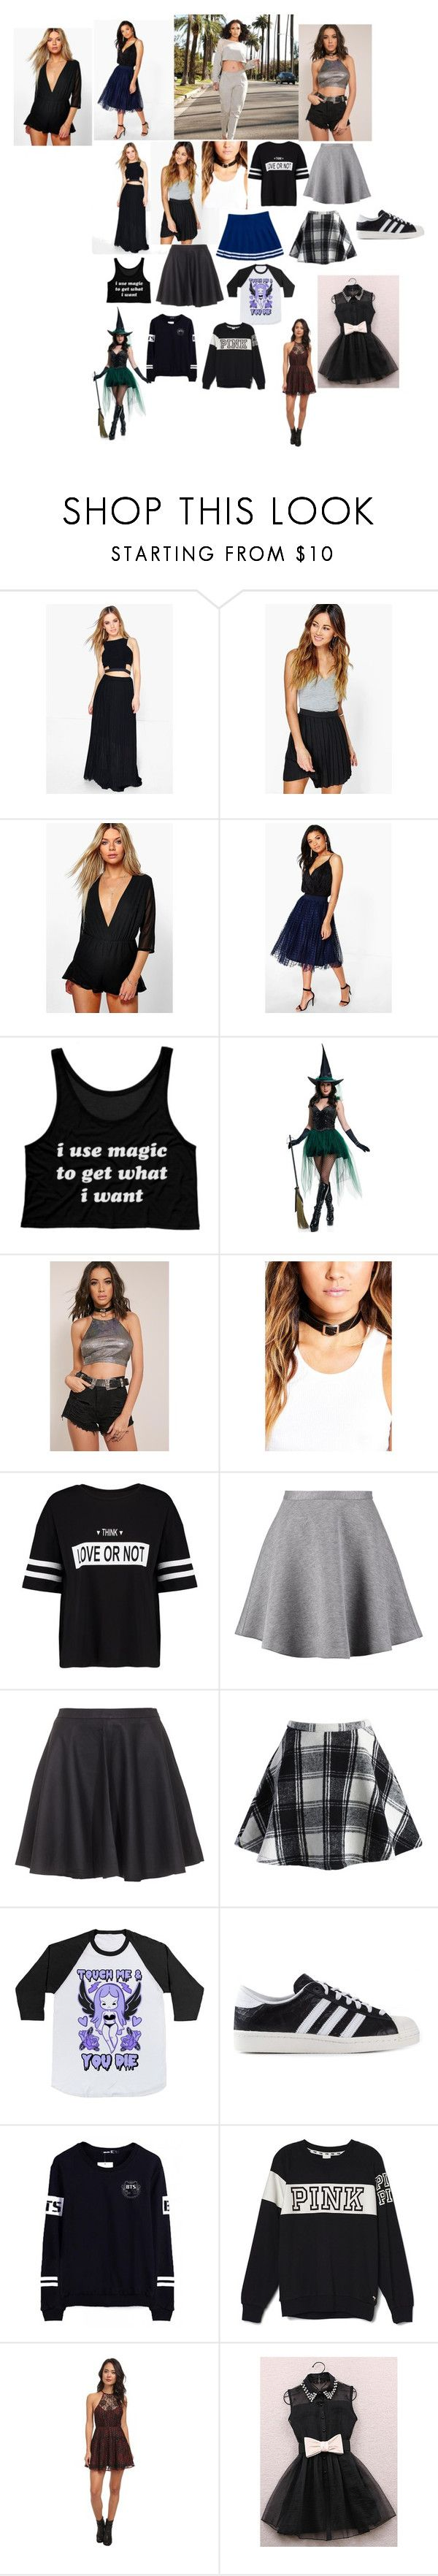 """""""my wardrobe 23"""" by nikoleta-nicky-malik ❤ liked on Polyvore featuring Boohoo, TWINTIP, Tiger of Sweden, Joie, Chicwish, adidas Originals, Victoria's Secret PINK and Free People"""